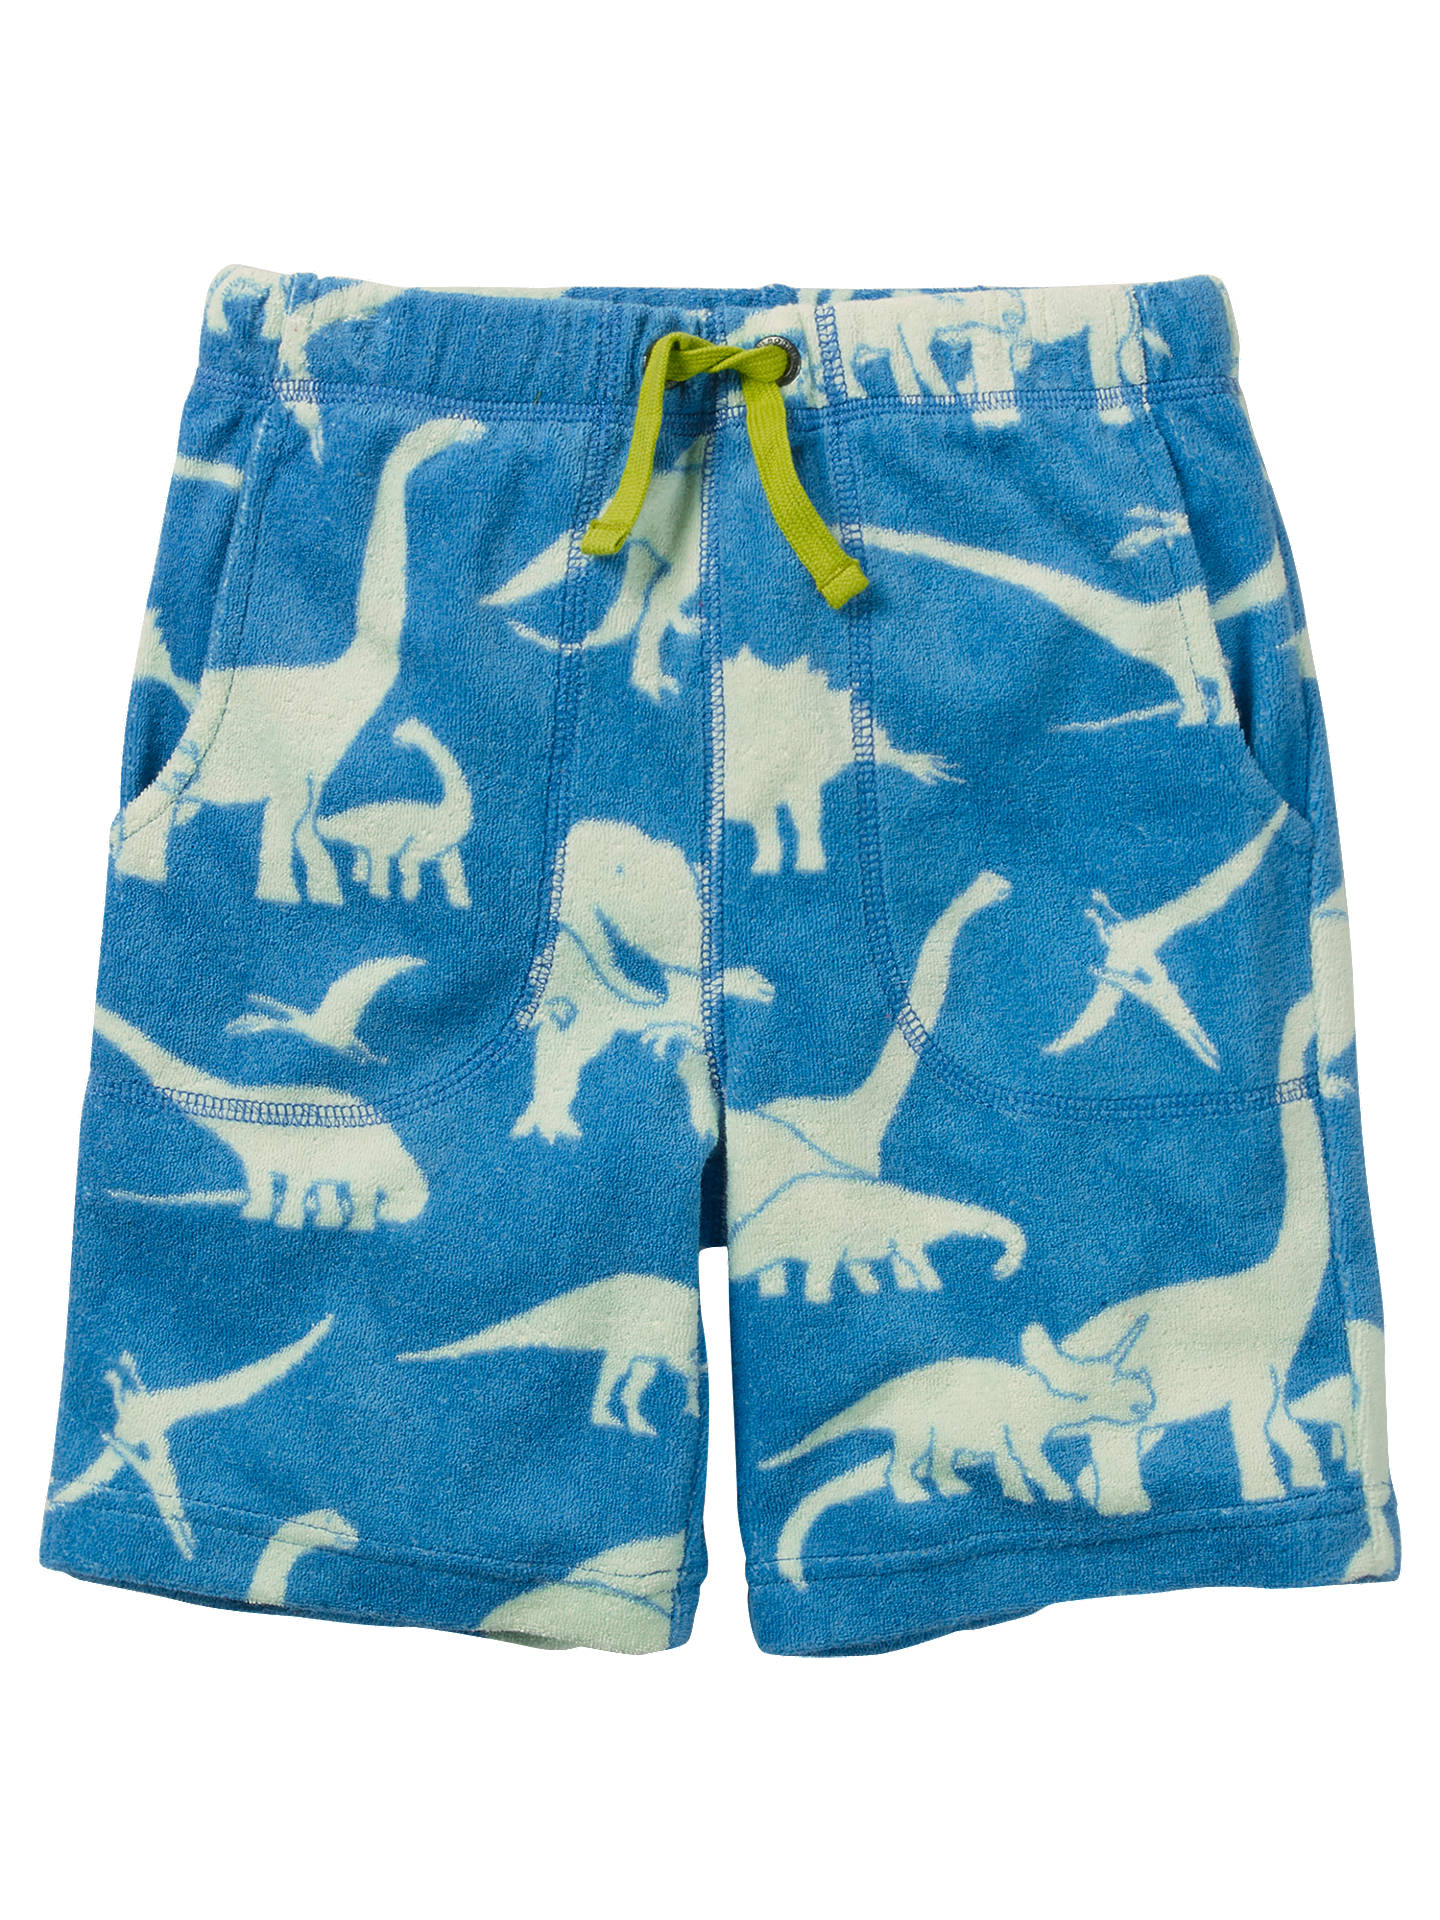 bfb1e8a99 Buy Mini Boden Boys' Dinosaur Towelling Shorts, Blue, 3 years Online at  johnlewis ...